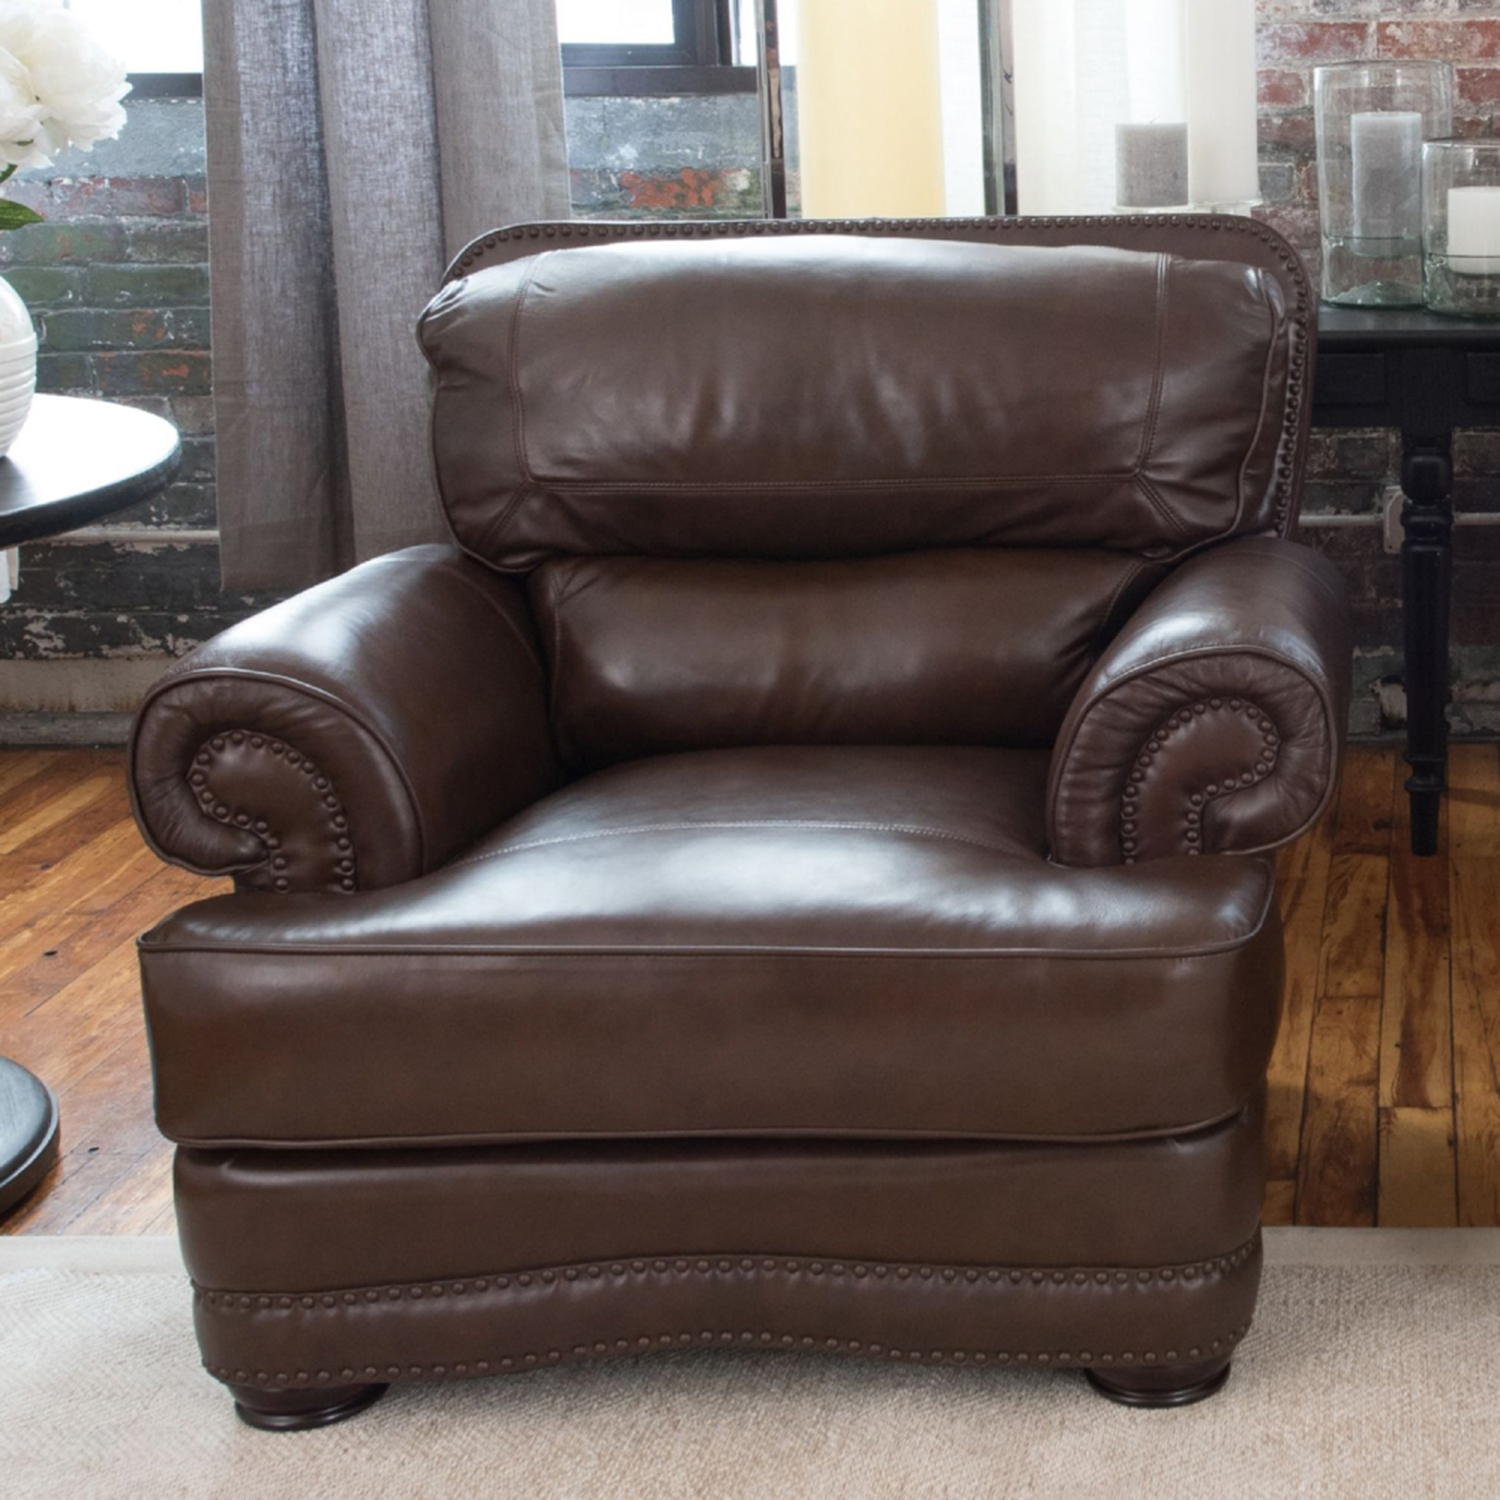 Charleston 4 Pieces Top Grain Leather Chairs and Ottomans - Toast - ELE-CHR-4PC-SC-SC-SO-SO-TOAS-1